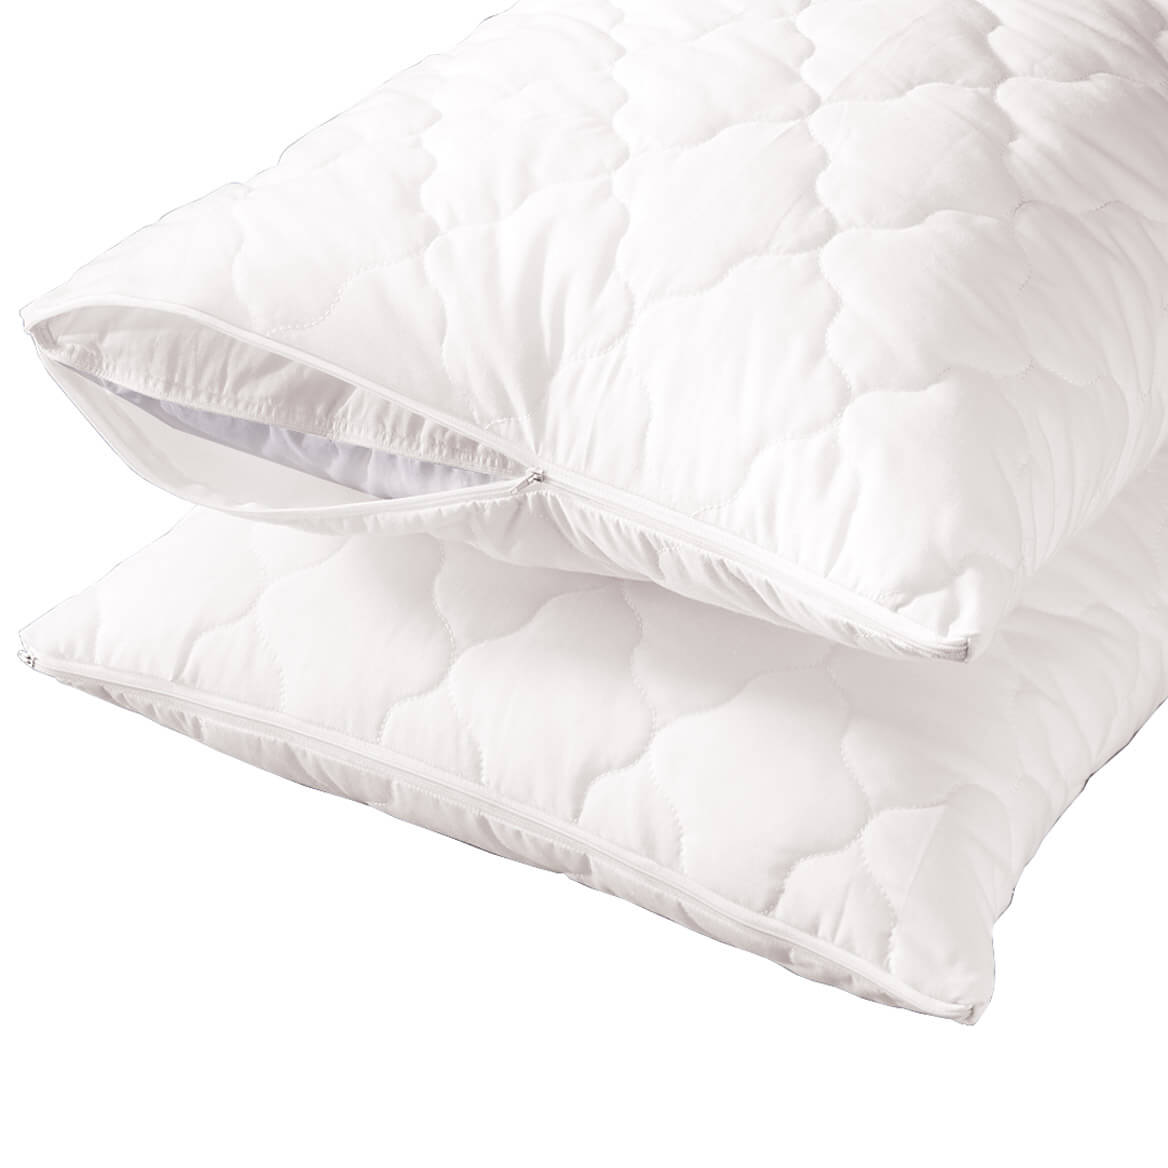 Quilted Pillow Covers Set/2-302728